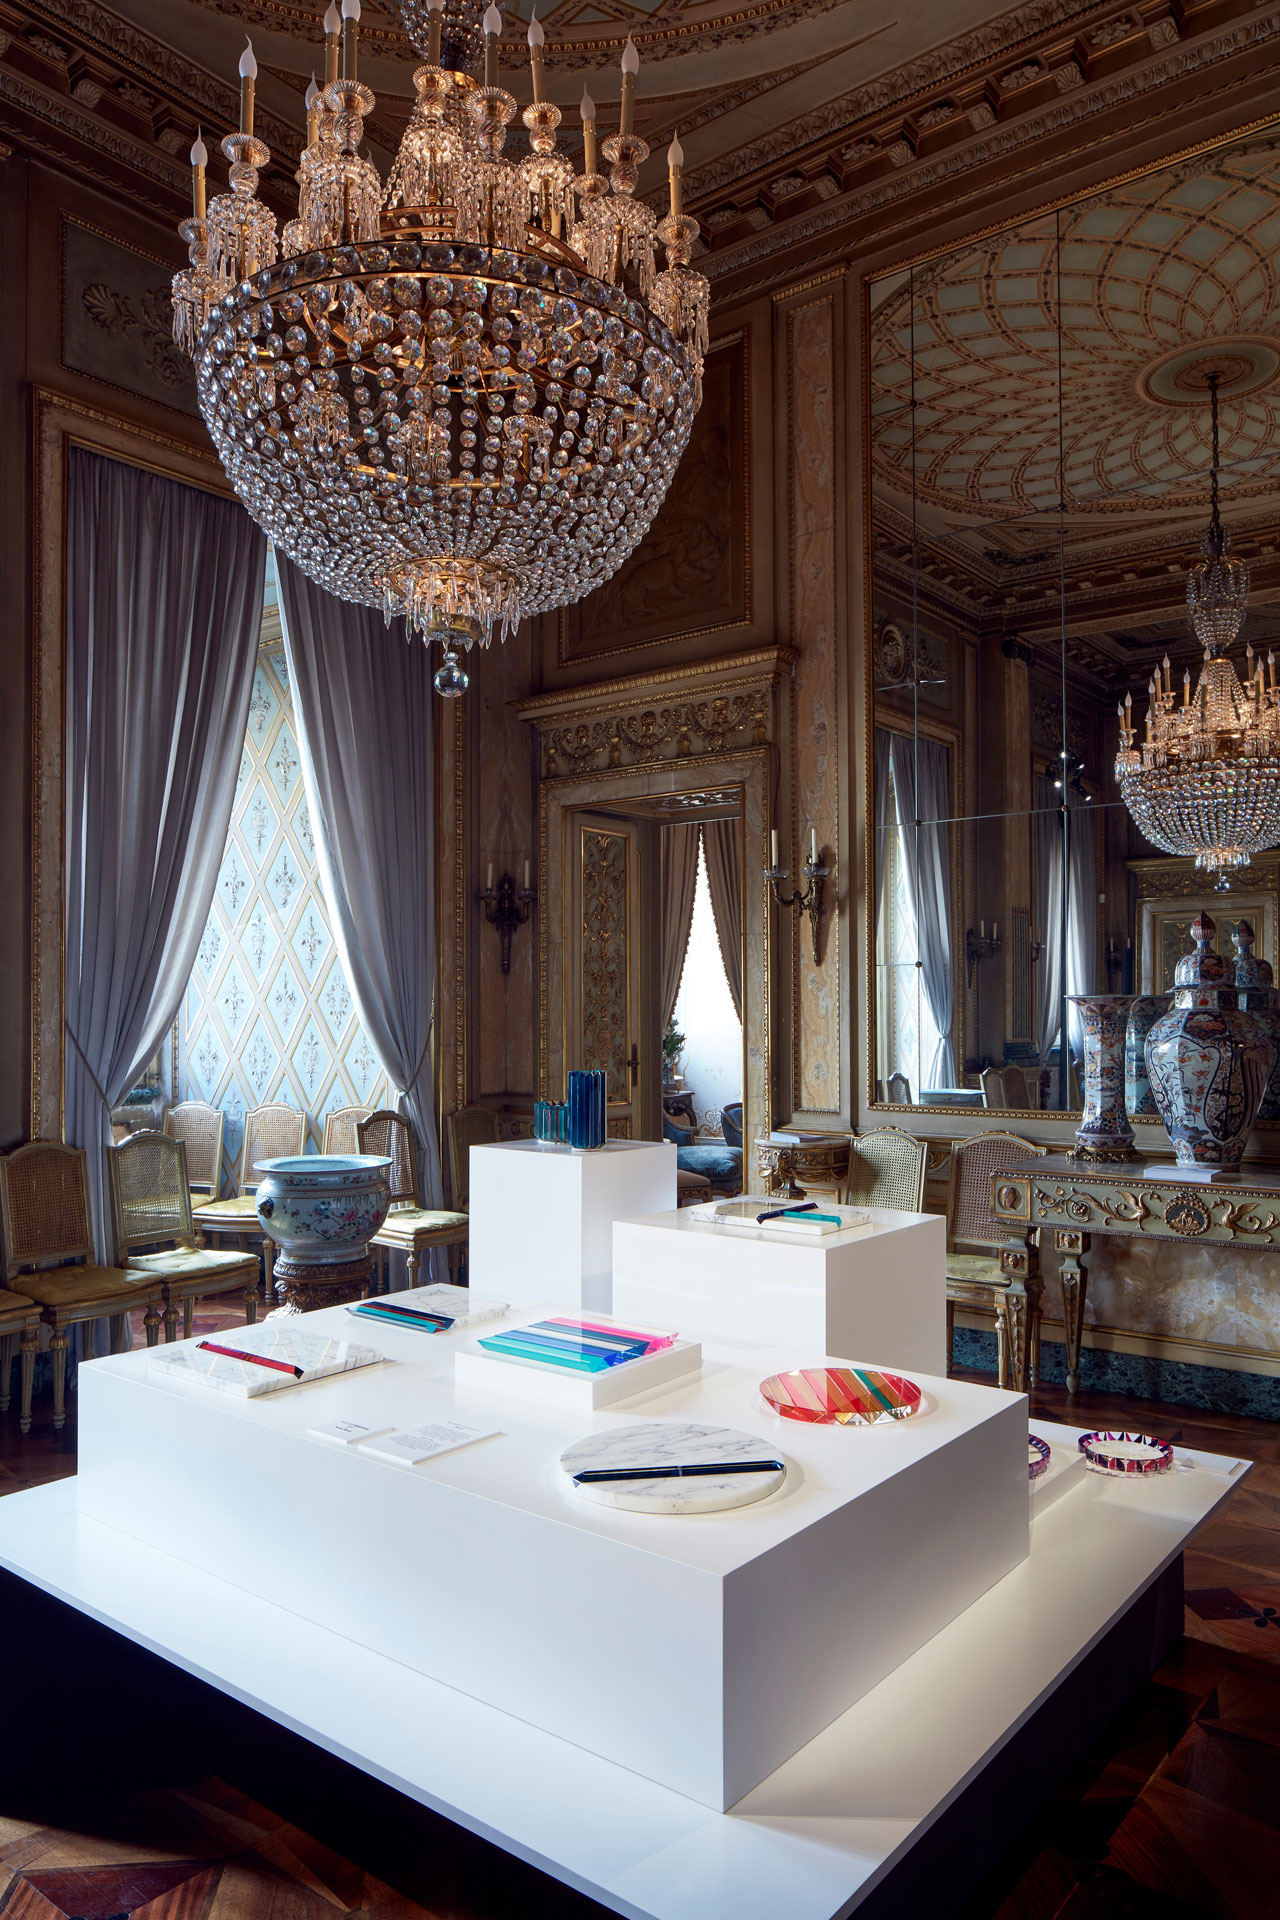 Installation view of the new collection of home accesories by Atelier Swarovski at the Palazzo Crespi.Photo © Mark Cocksedge.